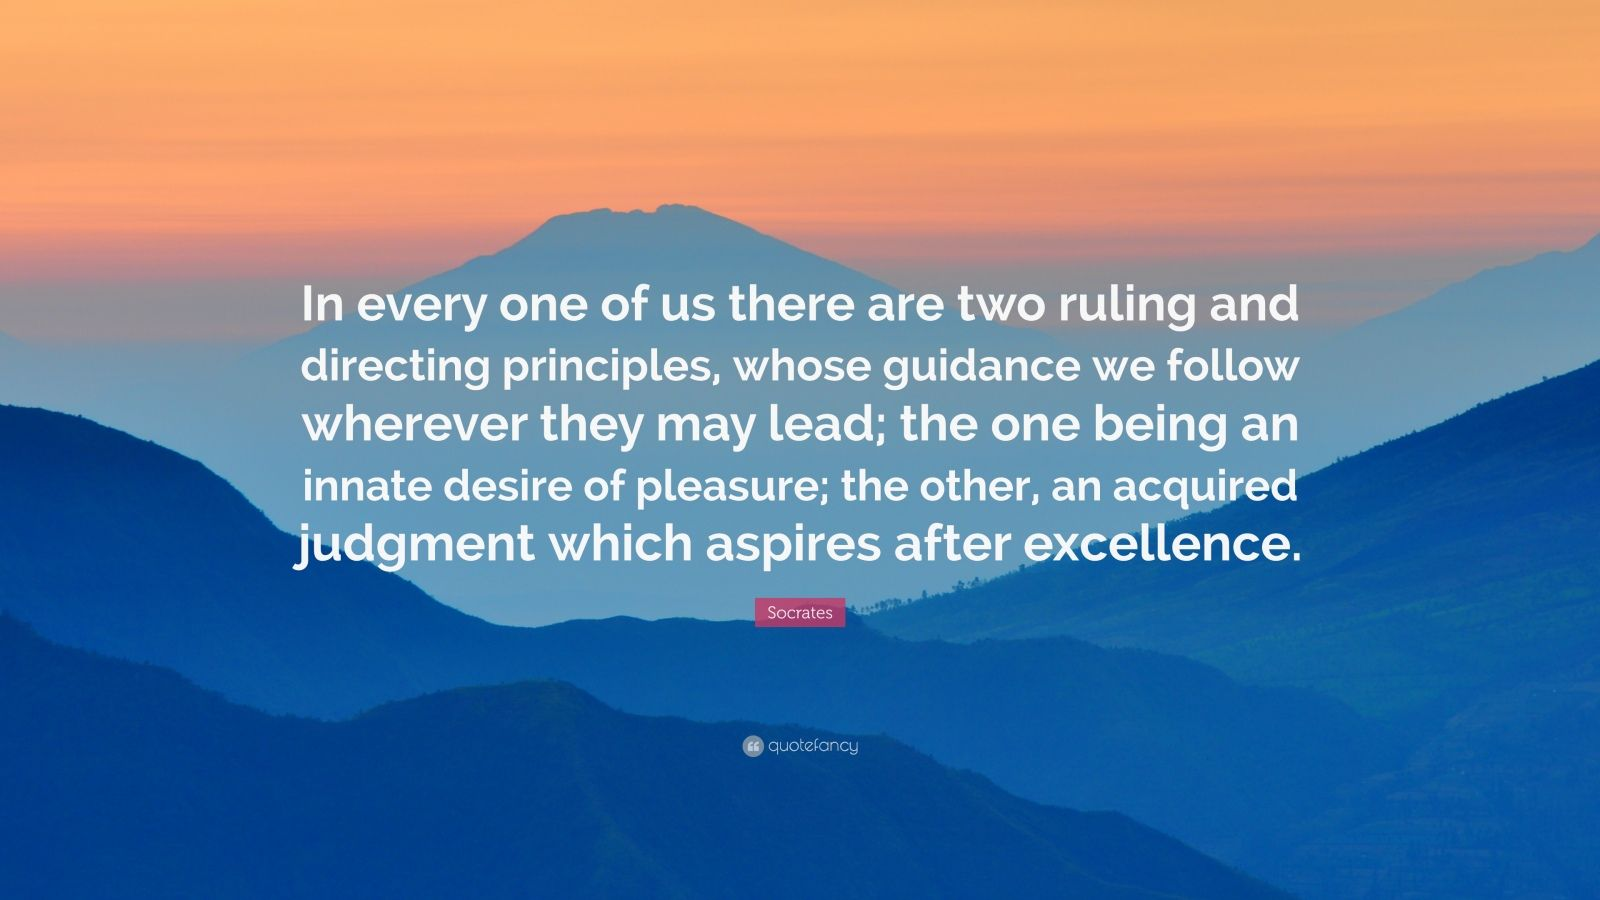 """Socrates Quote: """"In every one of us there are two ruling and directing principles, whose guidance we follow wherever they may lead; the one being an innate desire of pleasure; the other, an acquired judgment which aspires after excellence."""""""